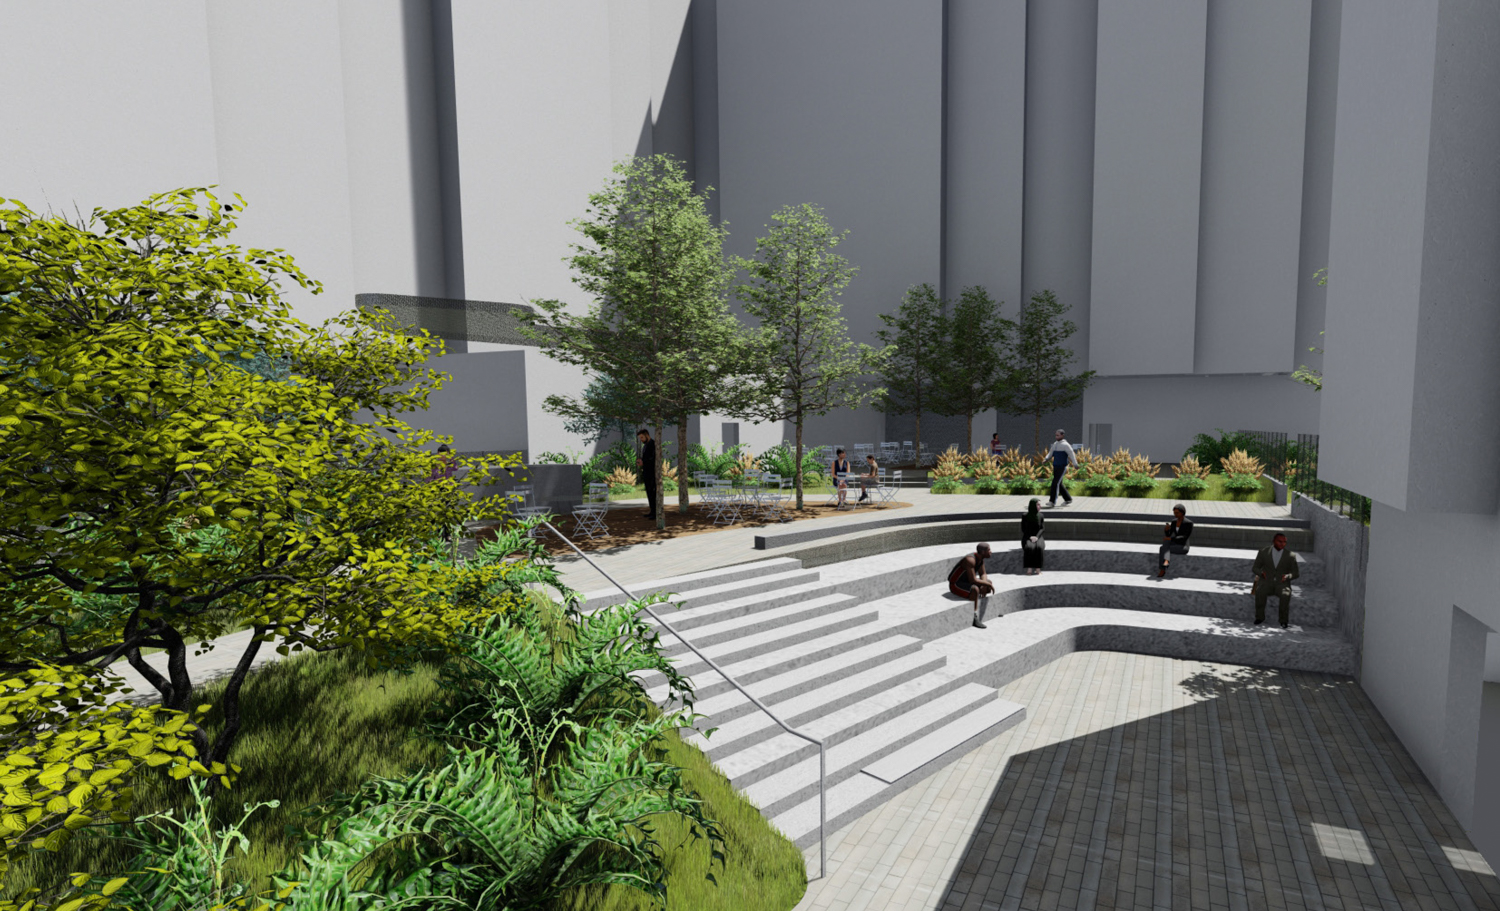 Potrero Hill Block B community amphitheater steps and northern courtyard grove, design by HKIT Architects and Y.A. Studio